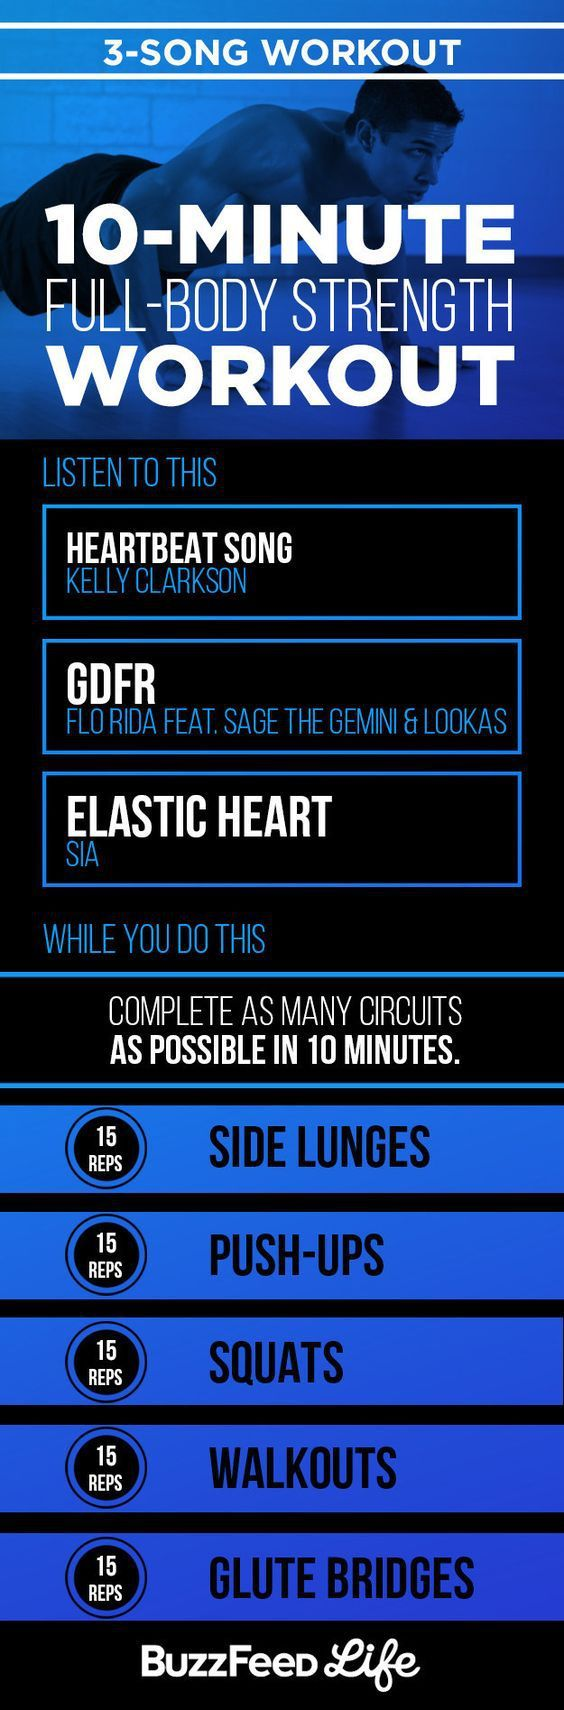 10 minute/3 song workout shows you what songs to exercise to and feel the burn.